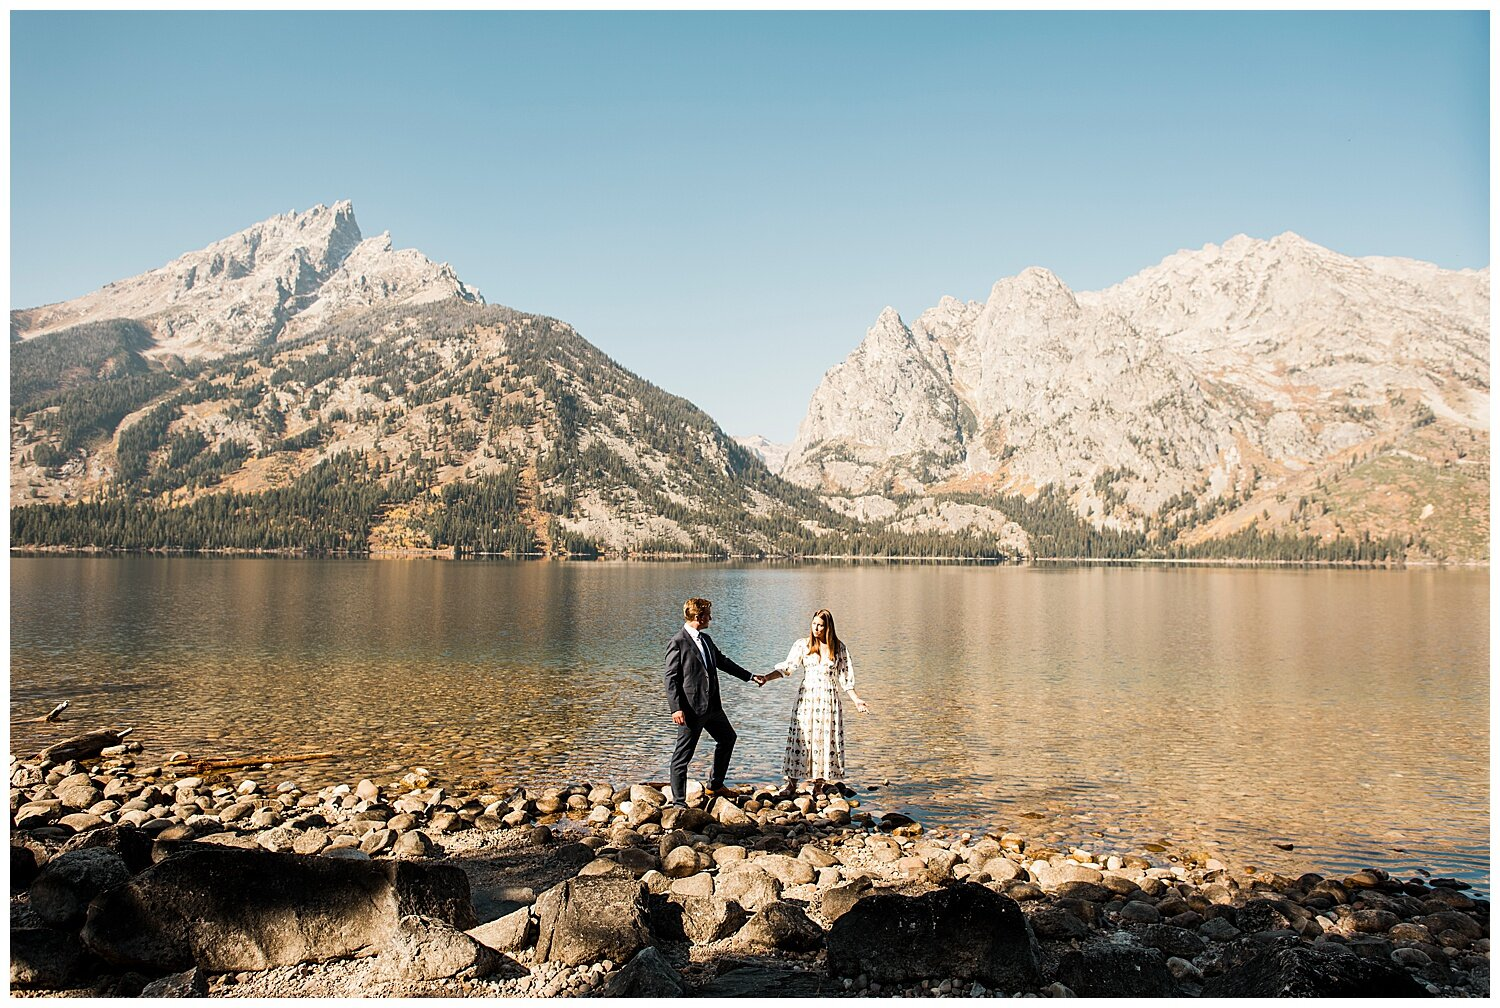 A couple holding hands while posing at the side of a lake with mountains at the background